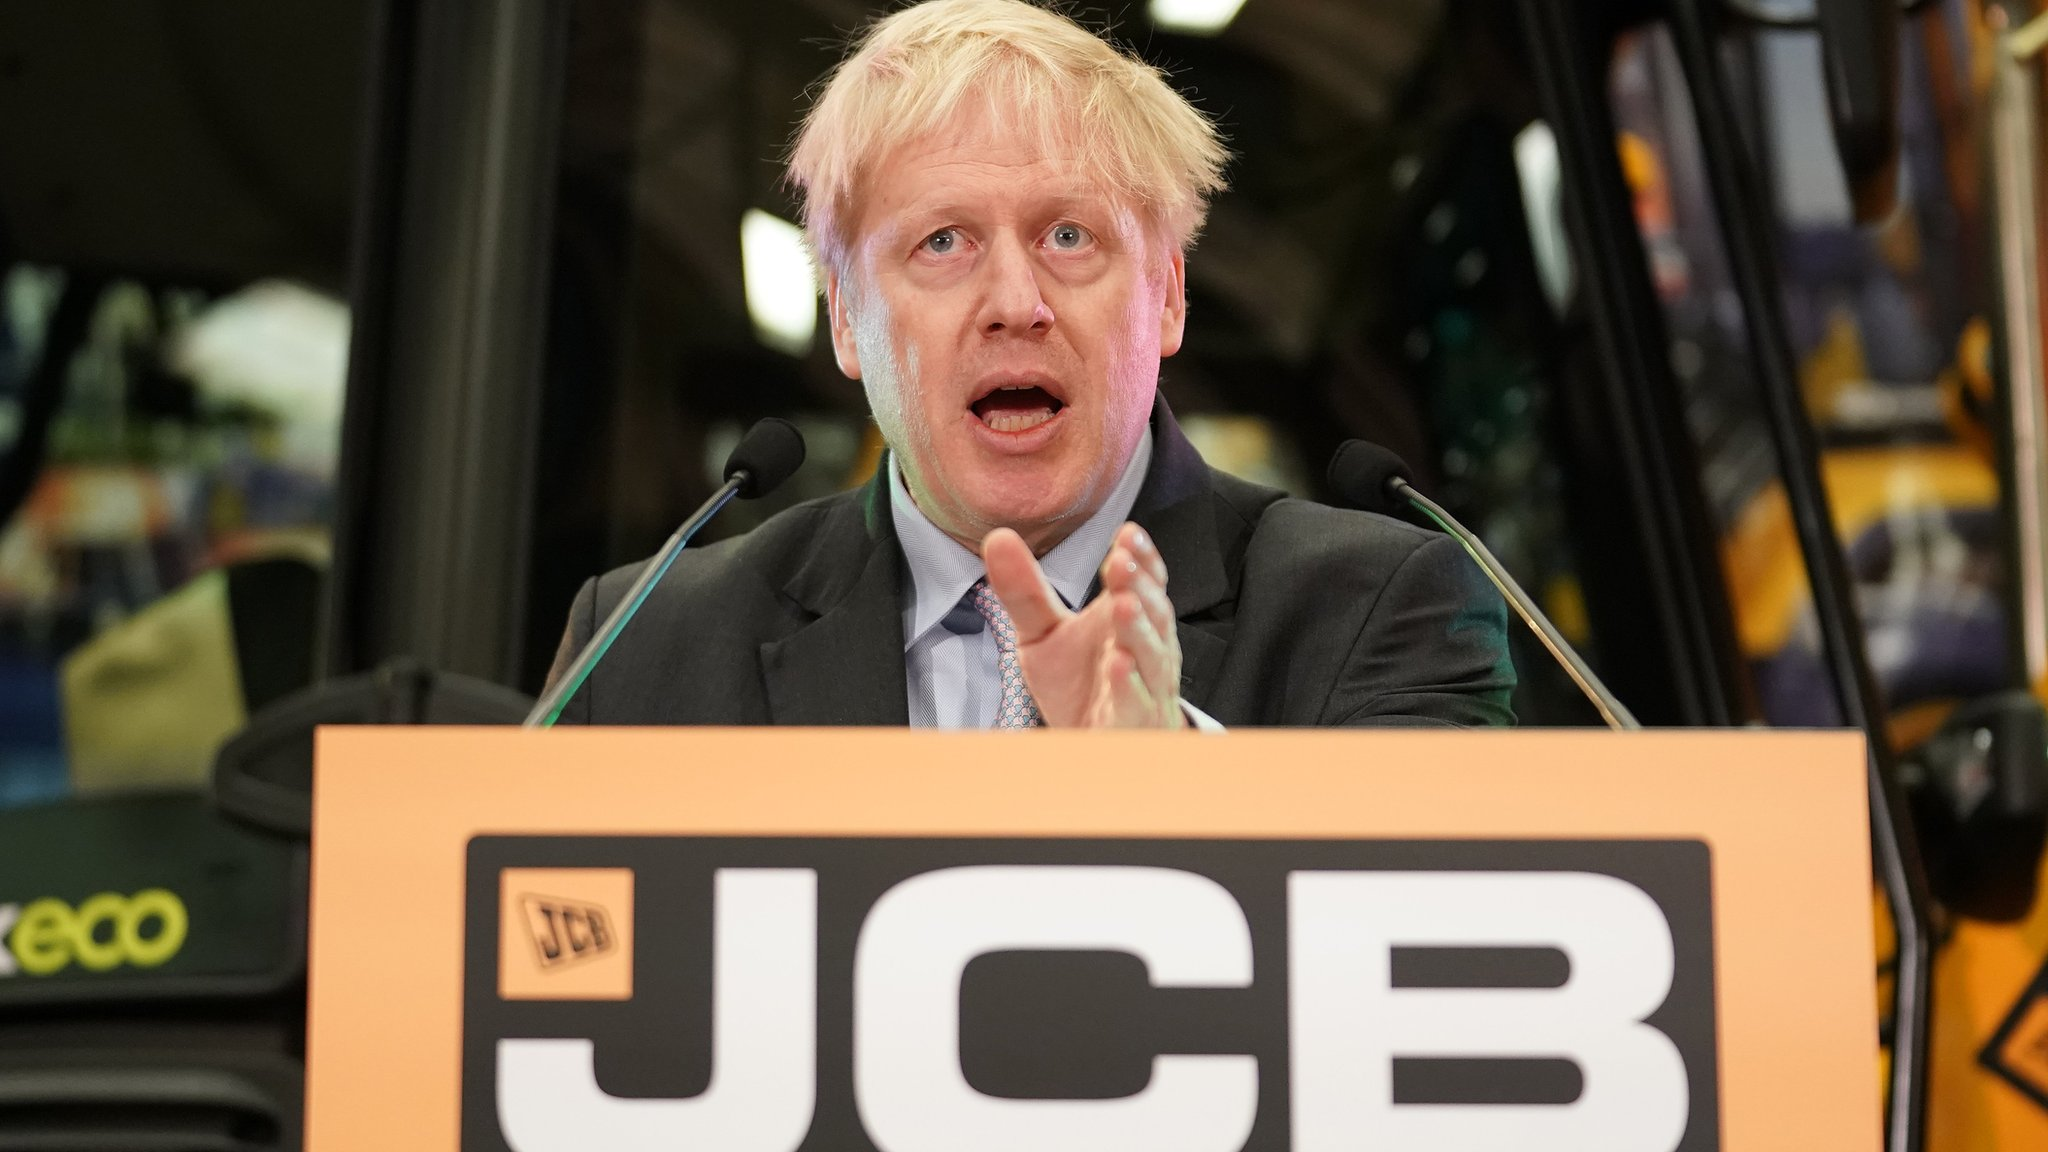 Did Johnson talk Turkey during Brexit campaign?